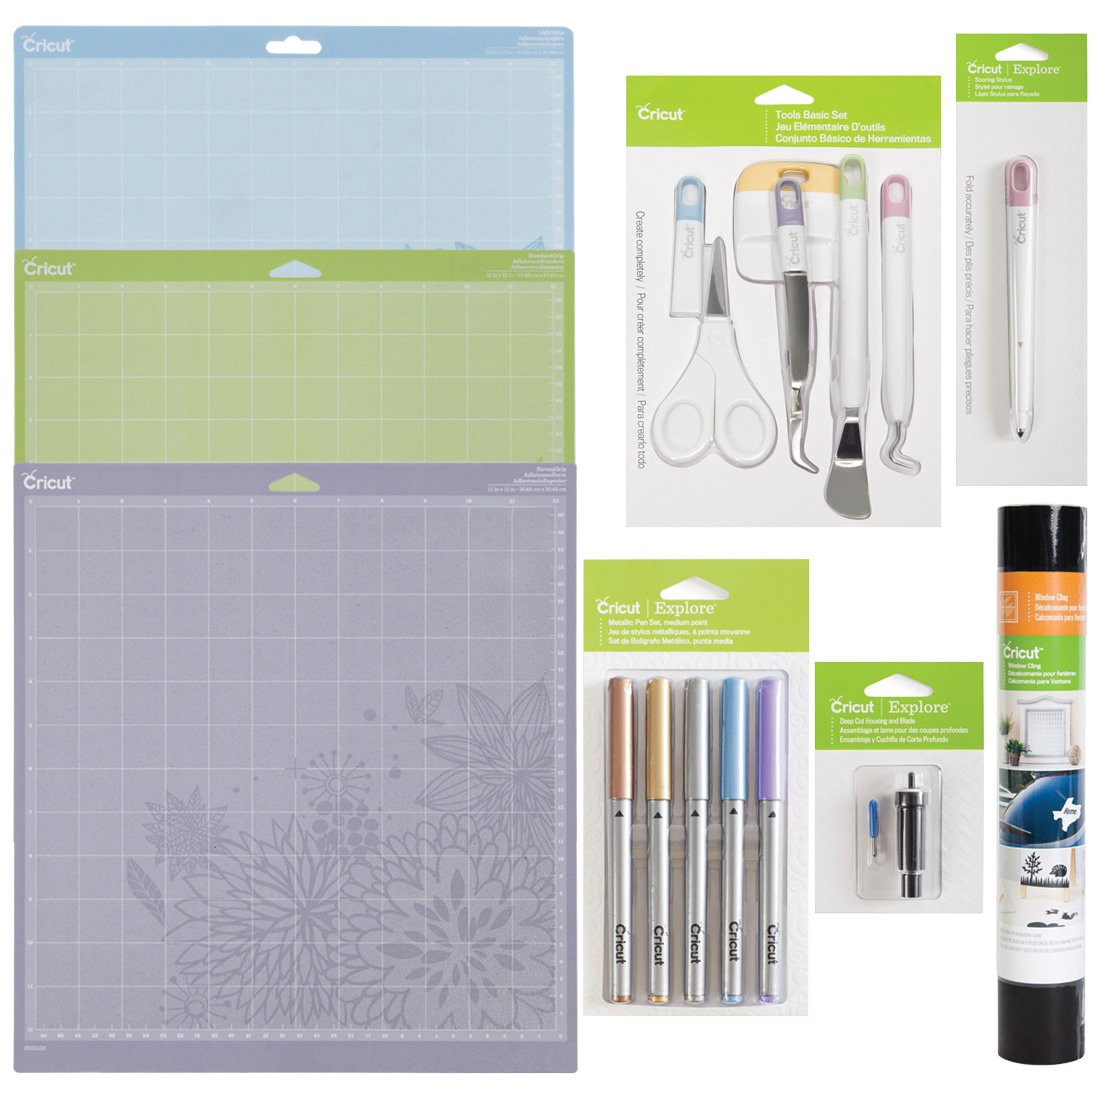 Cricut Accessories: What You Need to Get Started - The Country Chic